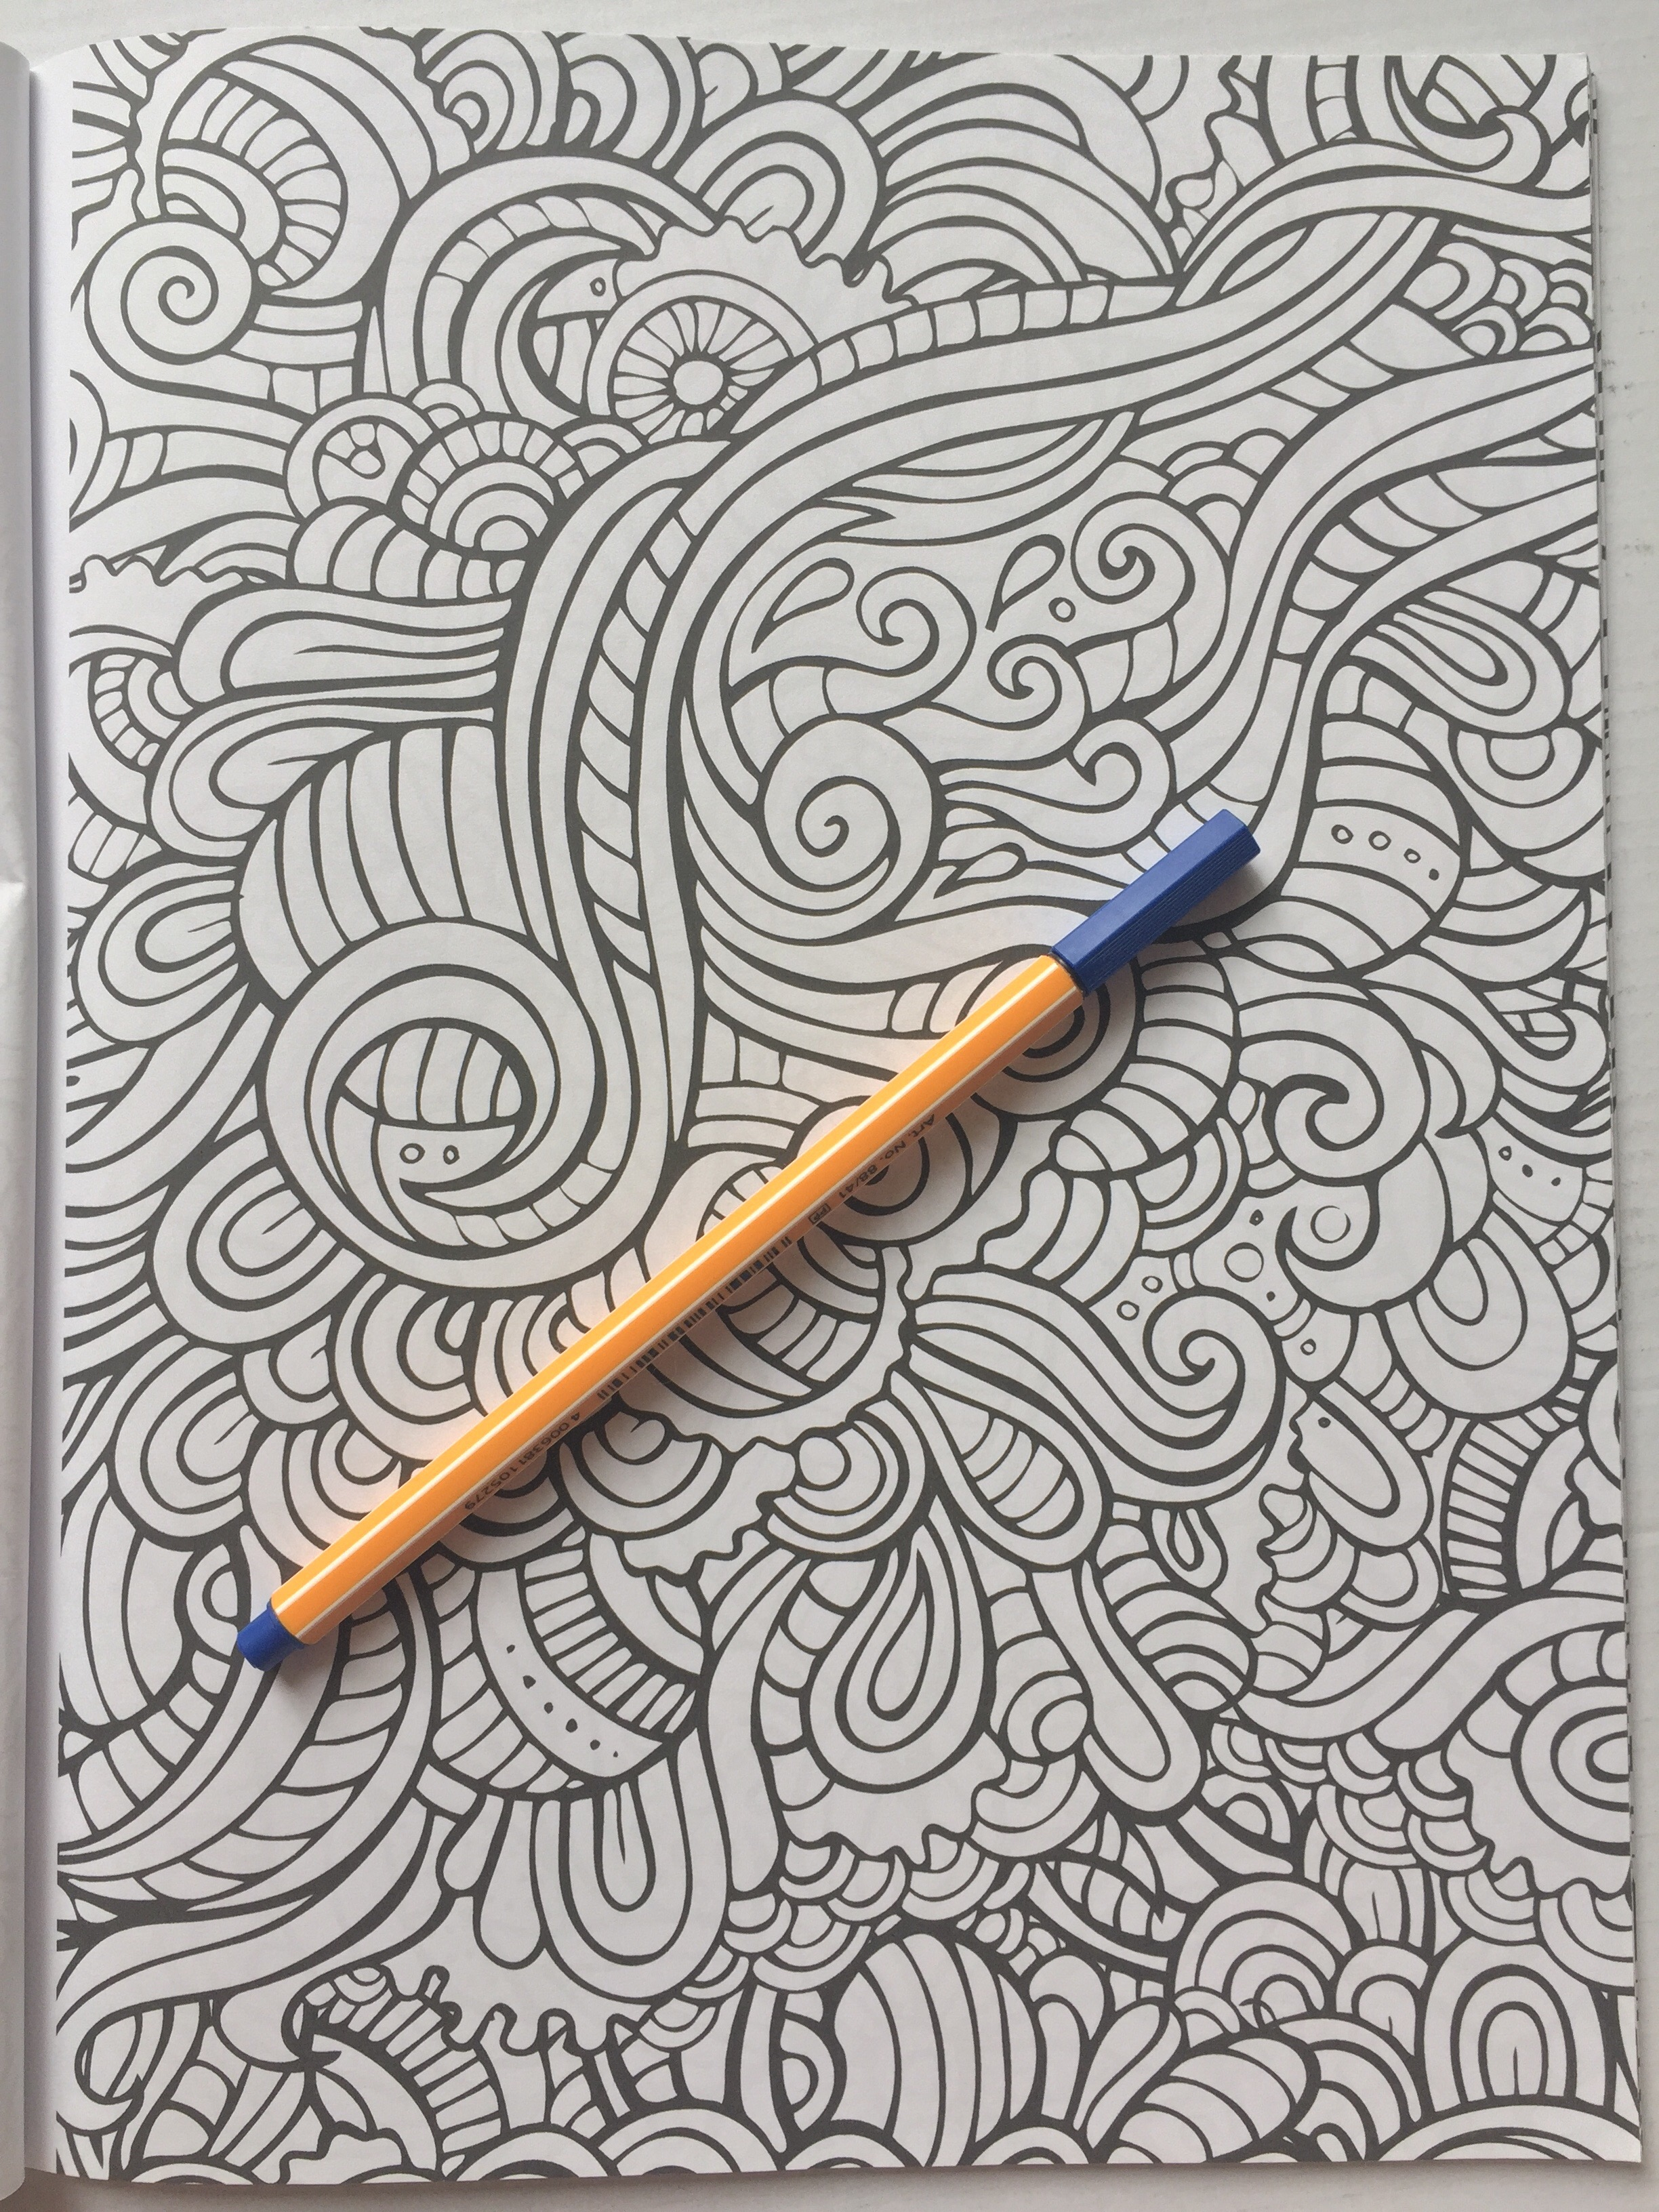 Posh coloring book soothing designs for fun and relaxation - Adult Colouring Coloring Art Therapy Patterns Coloring Mandala Stess Relief Coloring Book Colouring Book Reviews Pencils